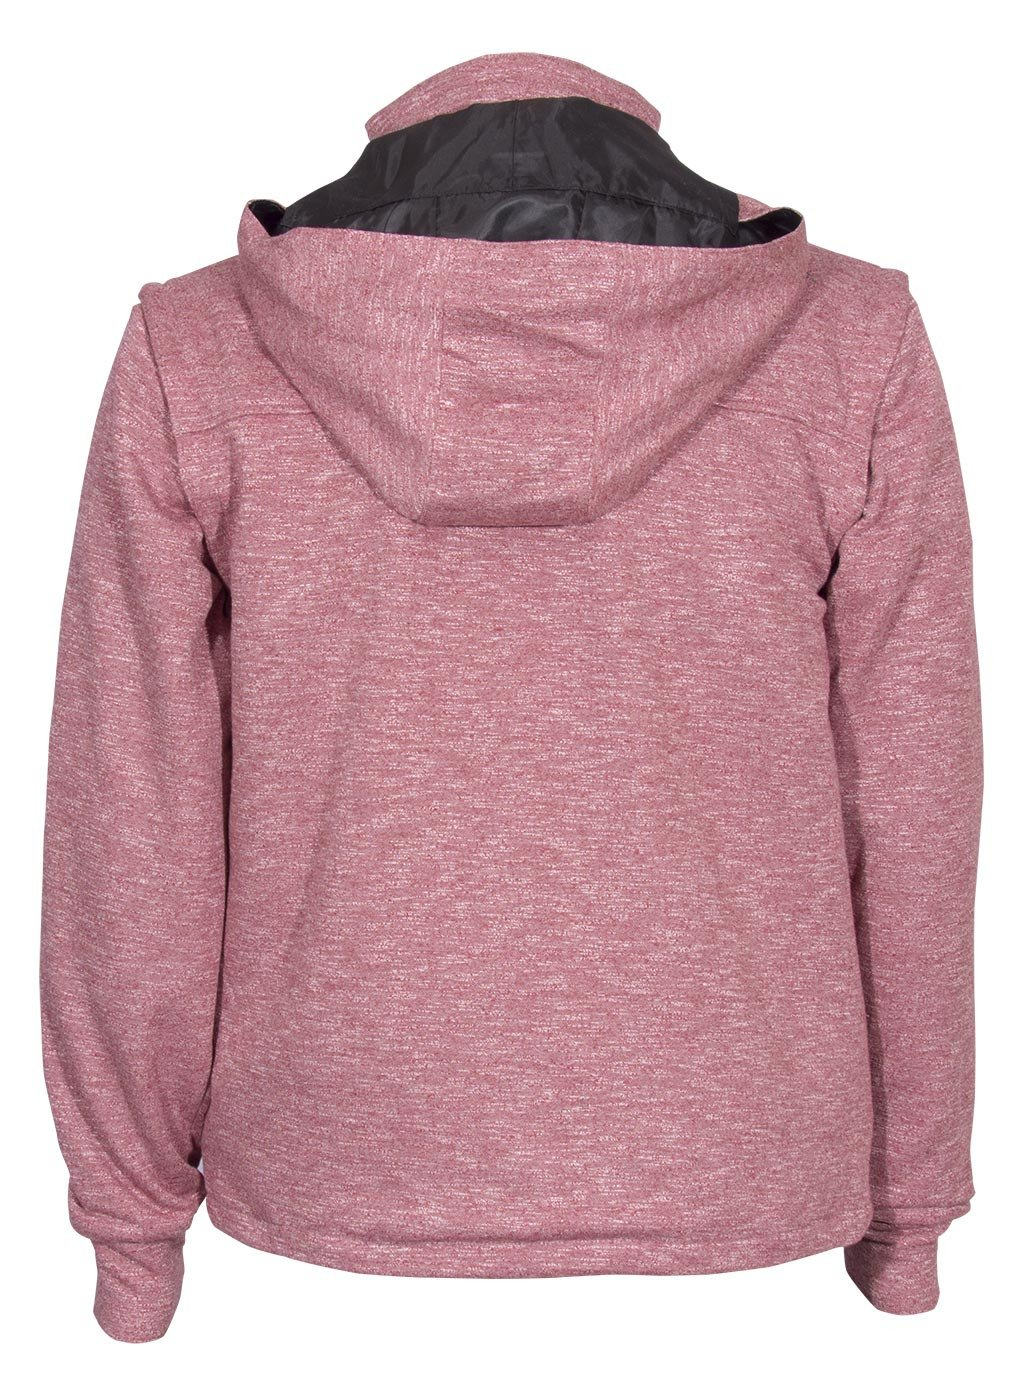 Red Joey Travel Hoodie | Global Travel Clothing